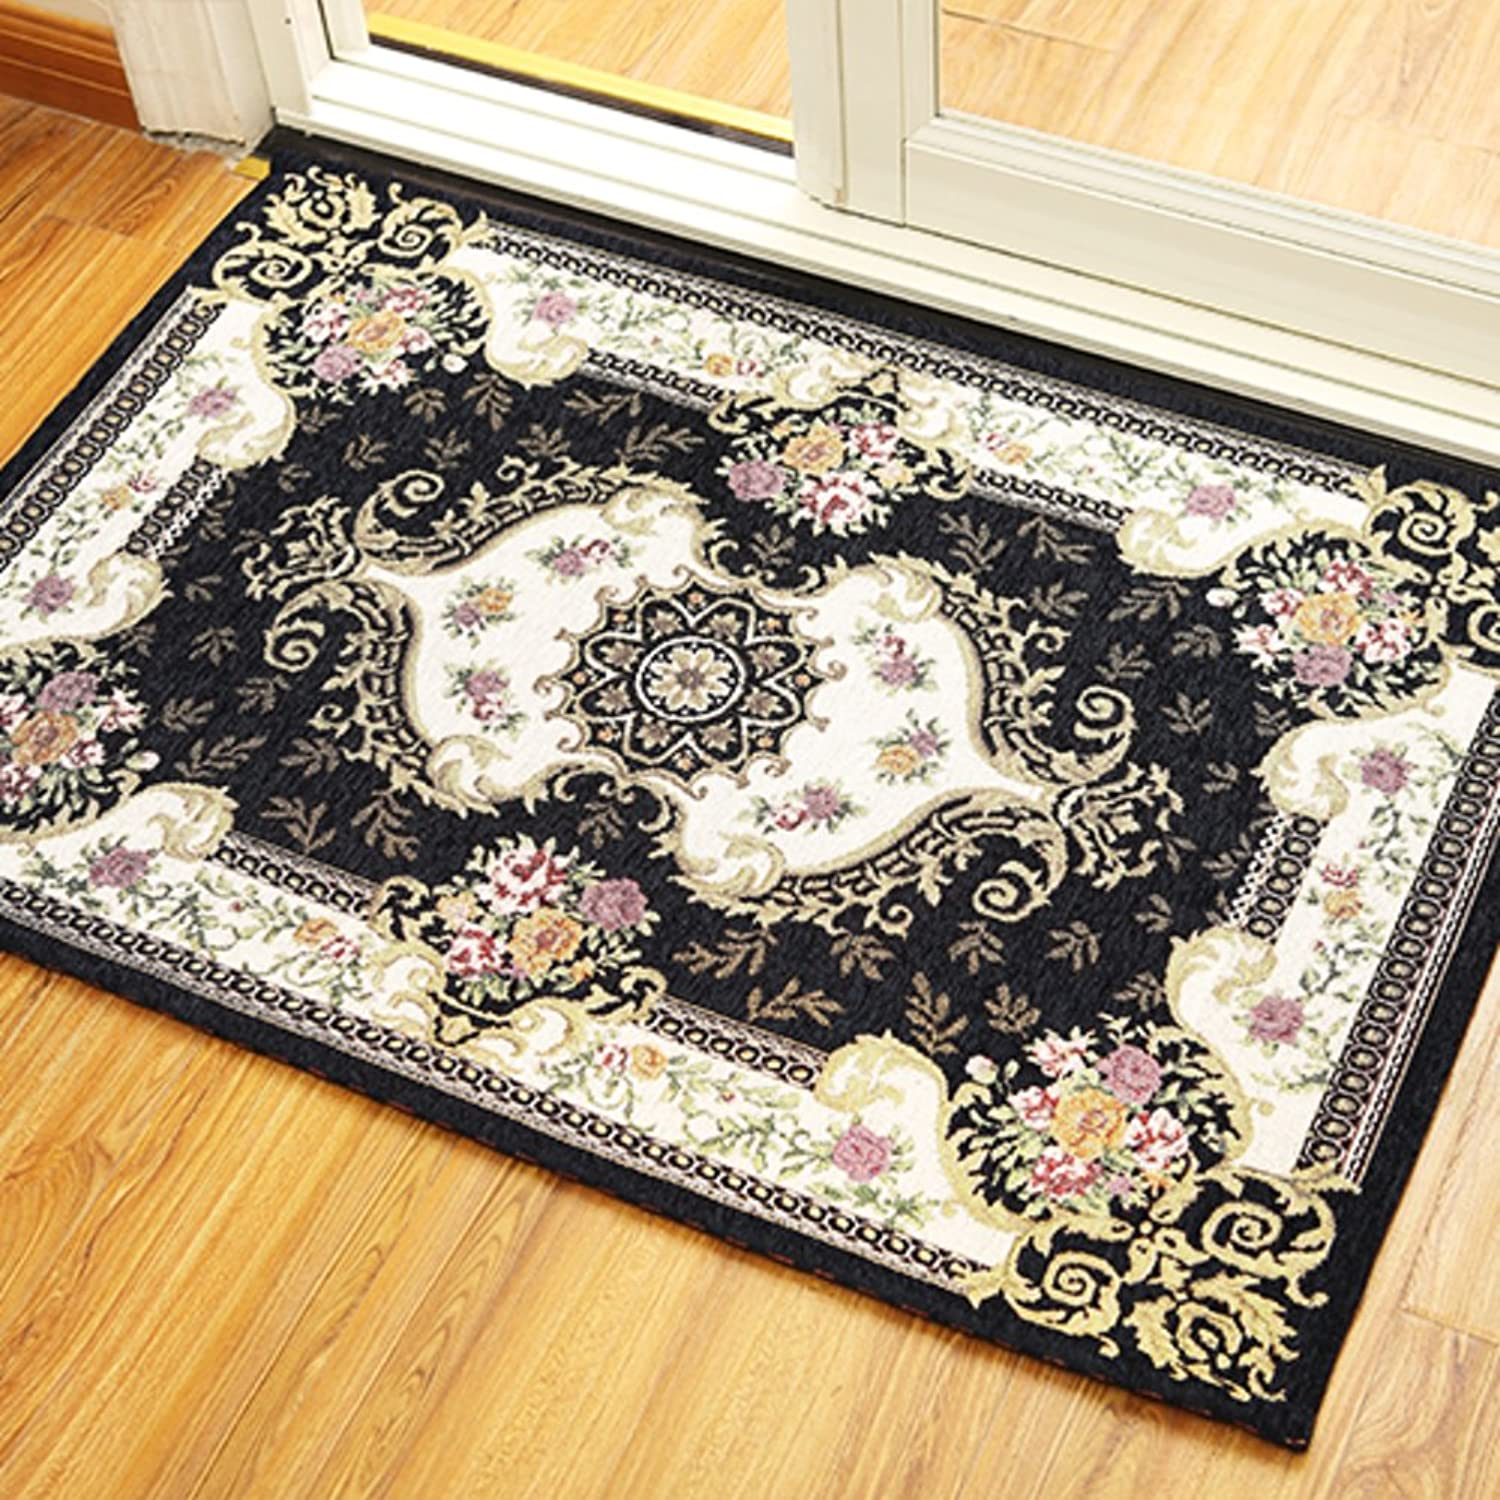 European Style,Indoor Mats Doormat Foot Pad Doormat Door,Living Room,Lobby Floor Mats Bedroom,Indoor Mats Non-Slip Mat-C 140x160cm(55x63inch)